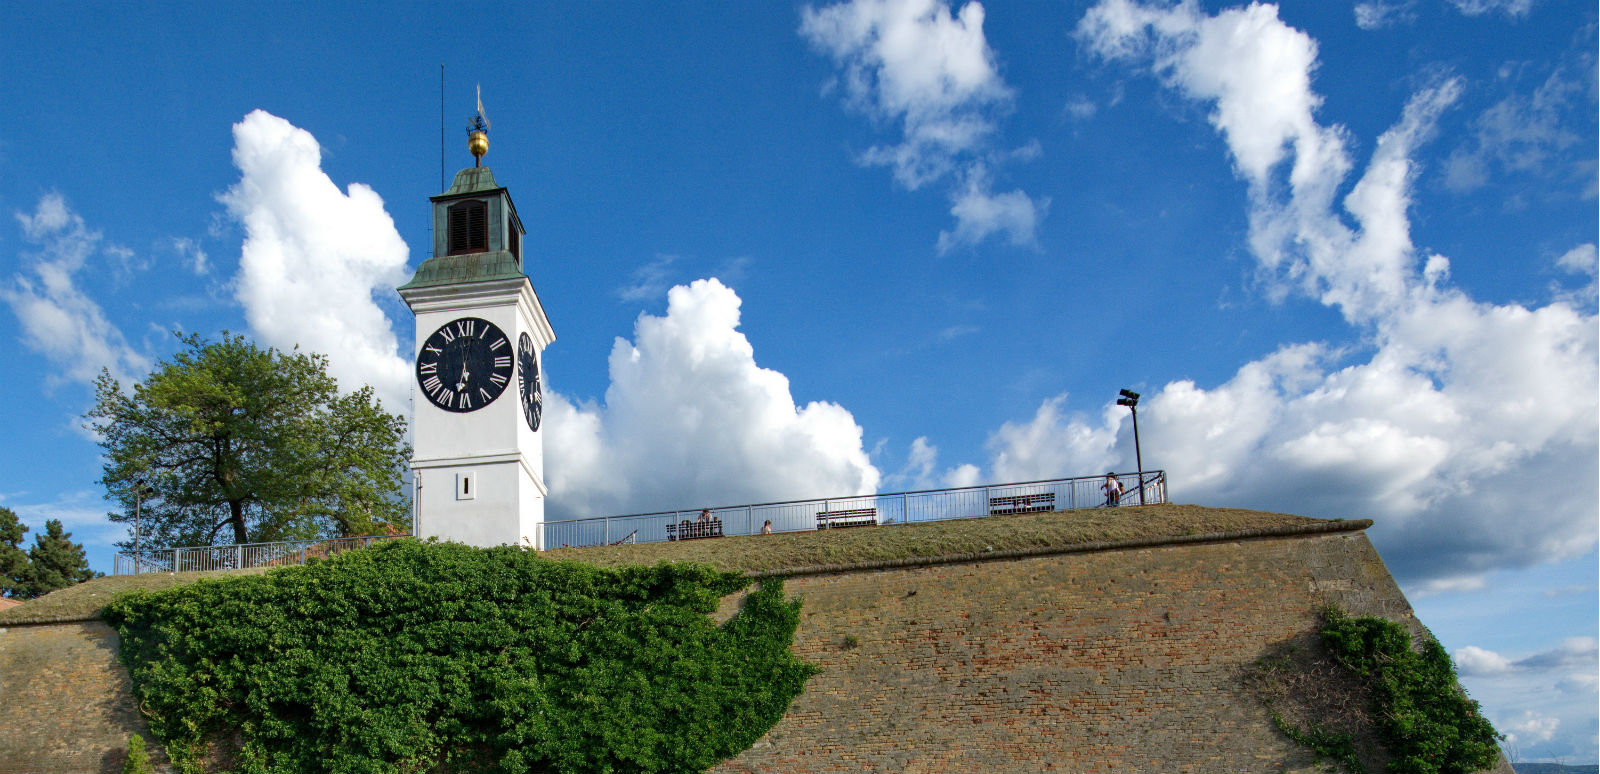 Petrovaradin Serbia  City new picture : Petrovaradin Fortress, Gibraltar on the Danube Serbia.com